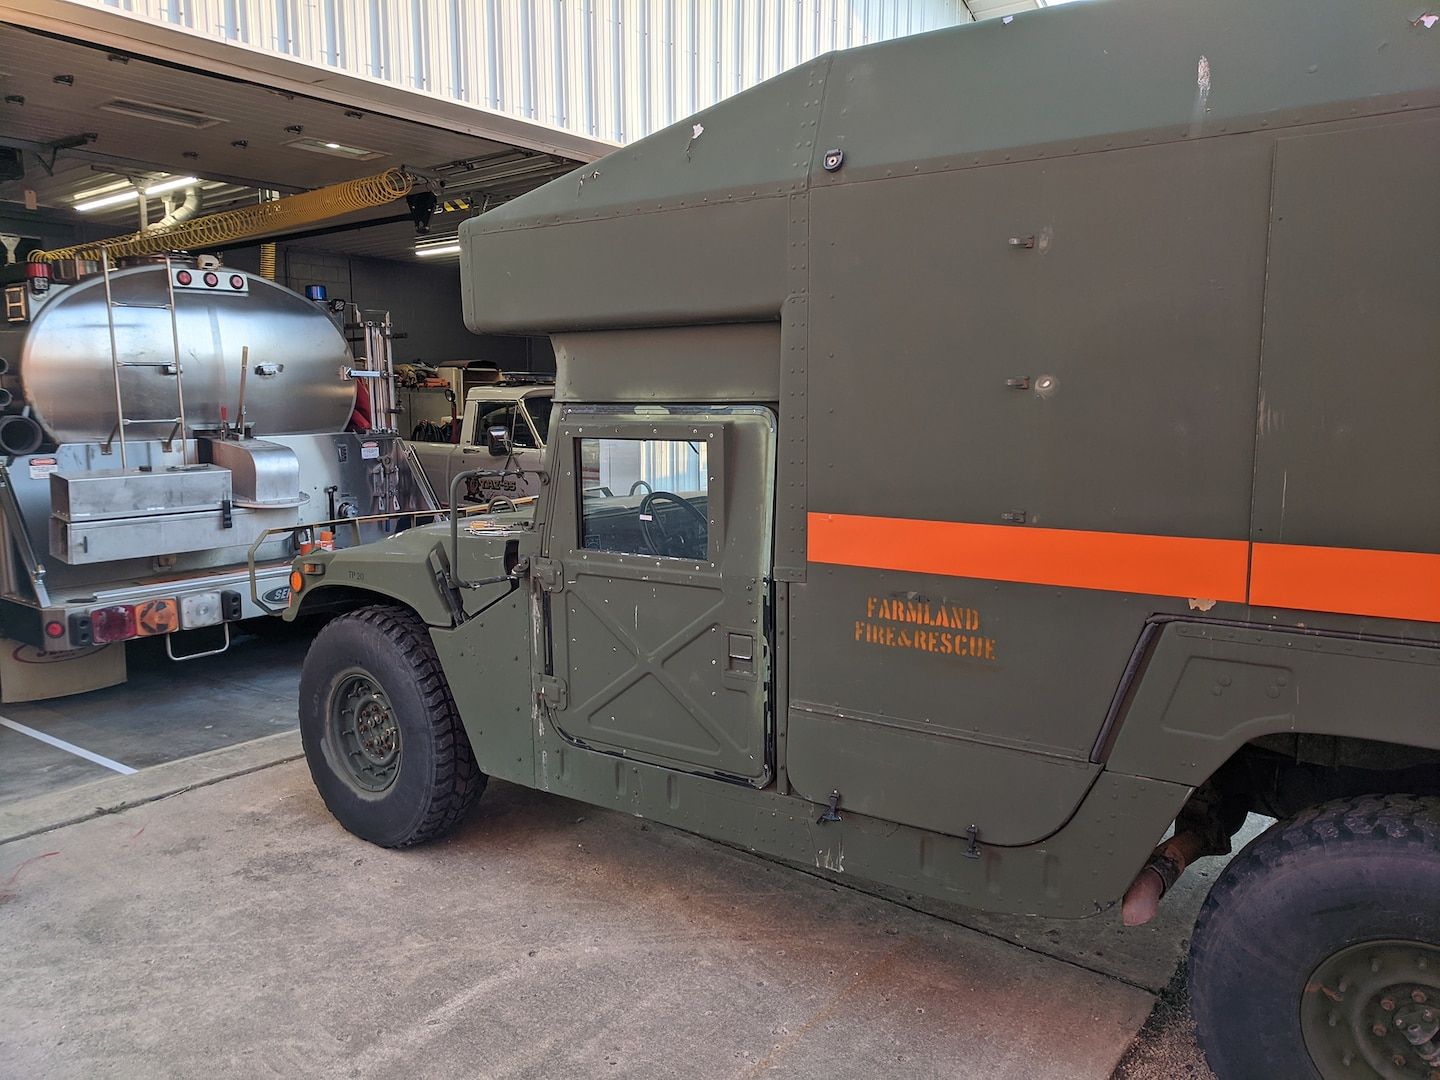 A Randolph County, Indiana, former military Humvee used by the rural fire department there. The truck was added to the county's emergency ambulance roster for transporting COVID-19 patients.